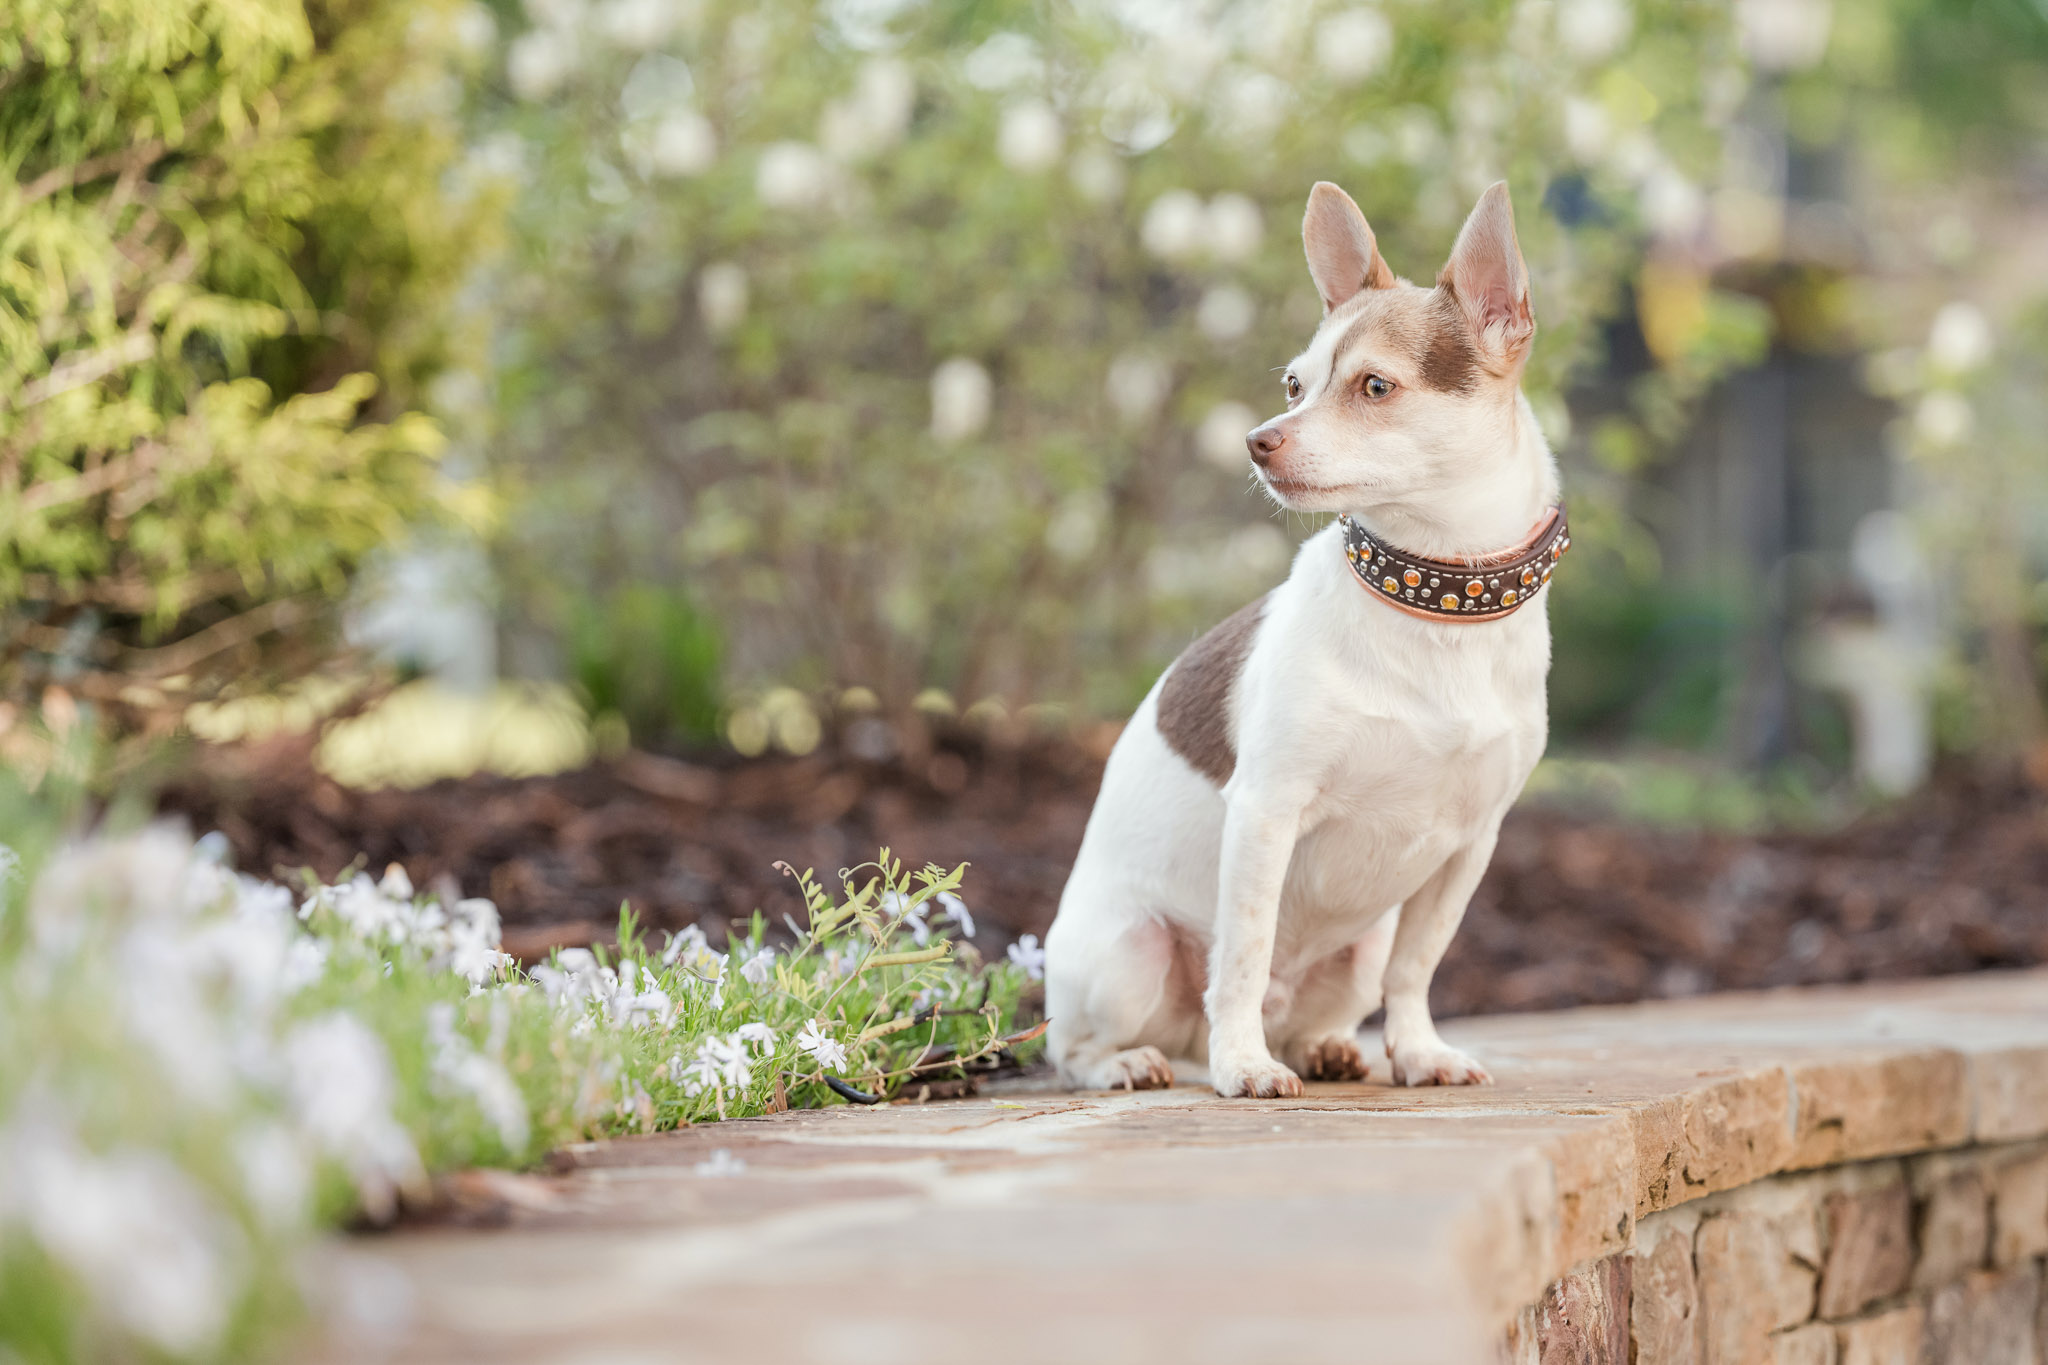 Atlanta pet photographer finds landscaped floral beds in dog friendly Roswell, Georgia.